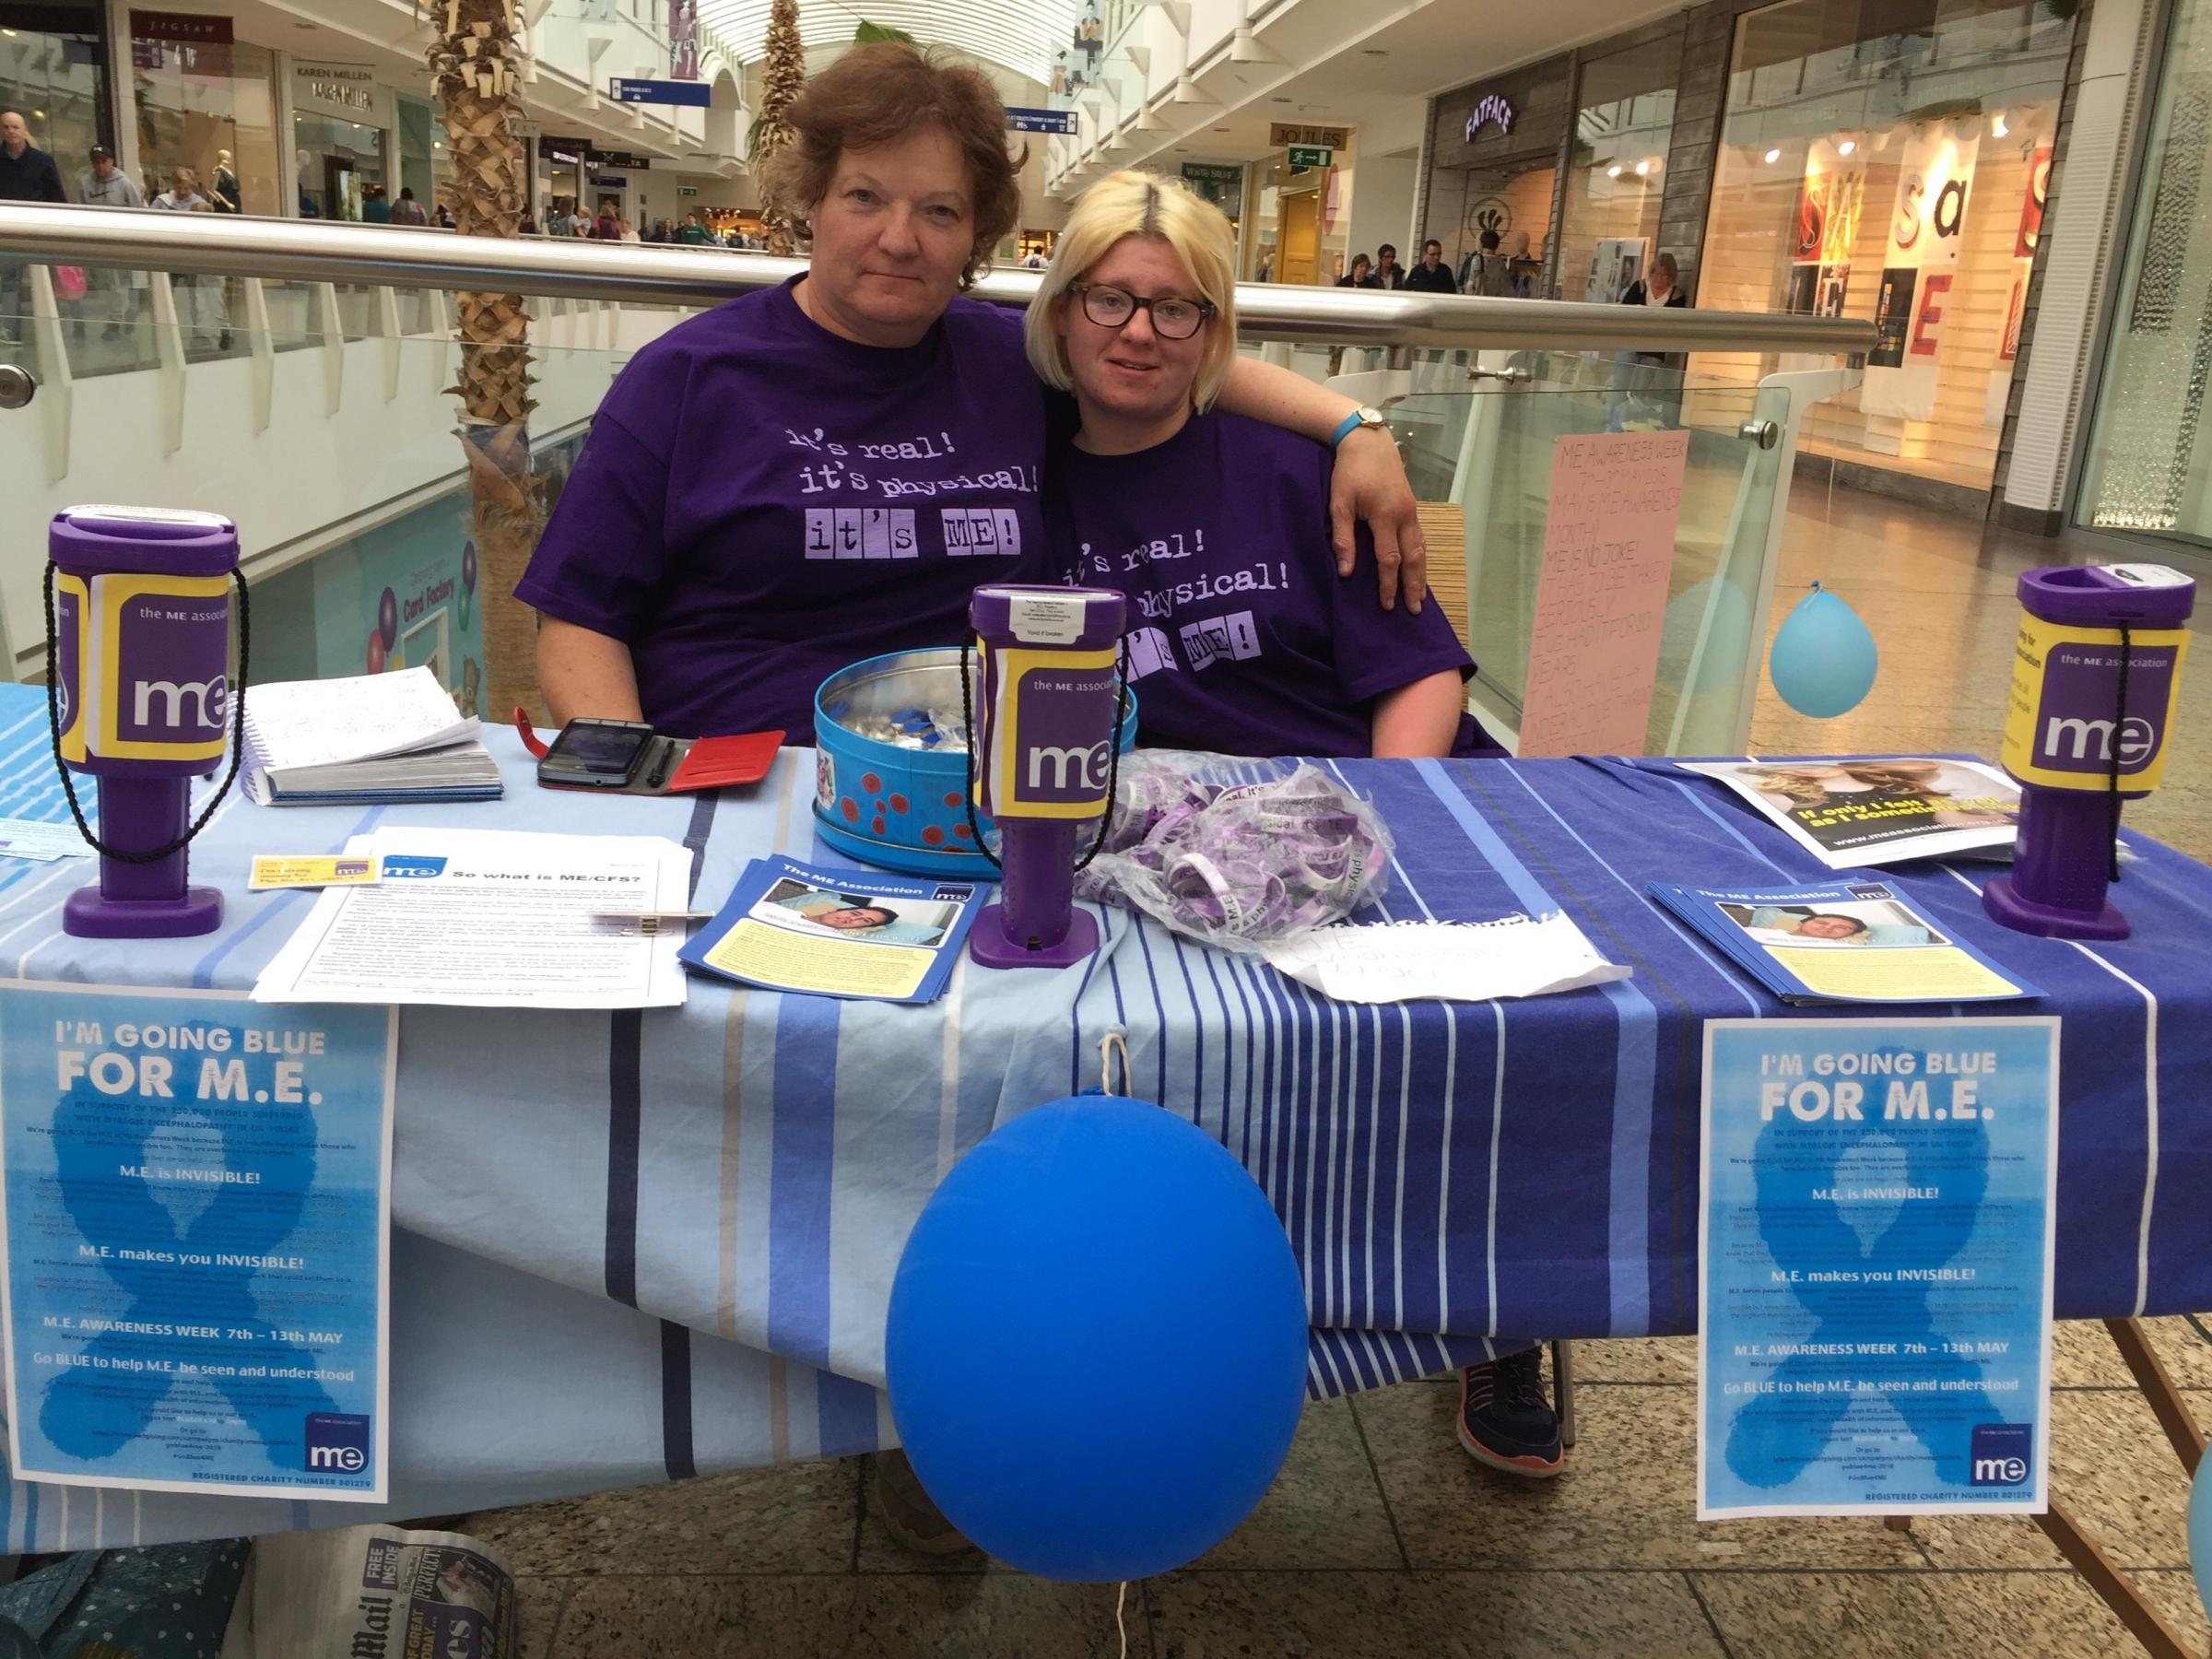 Liz and Helen Wood on their ME awareness stall in The Mall